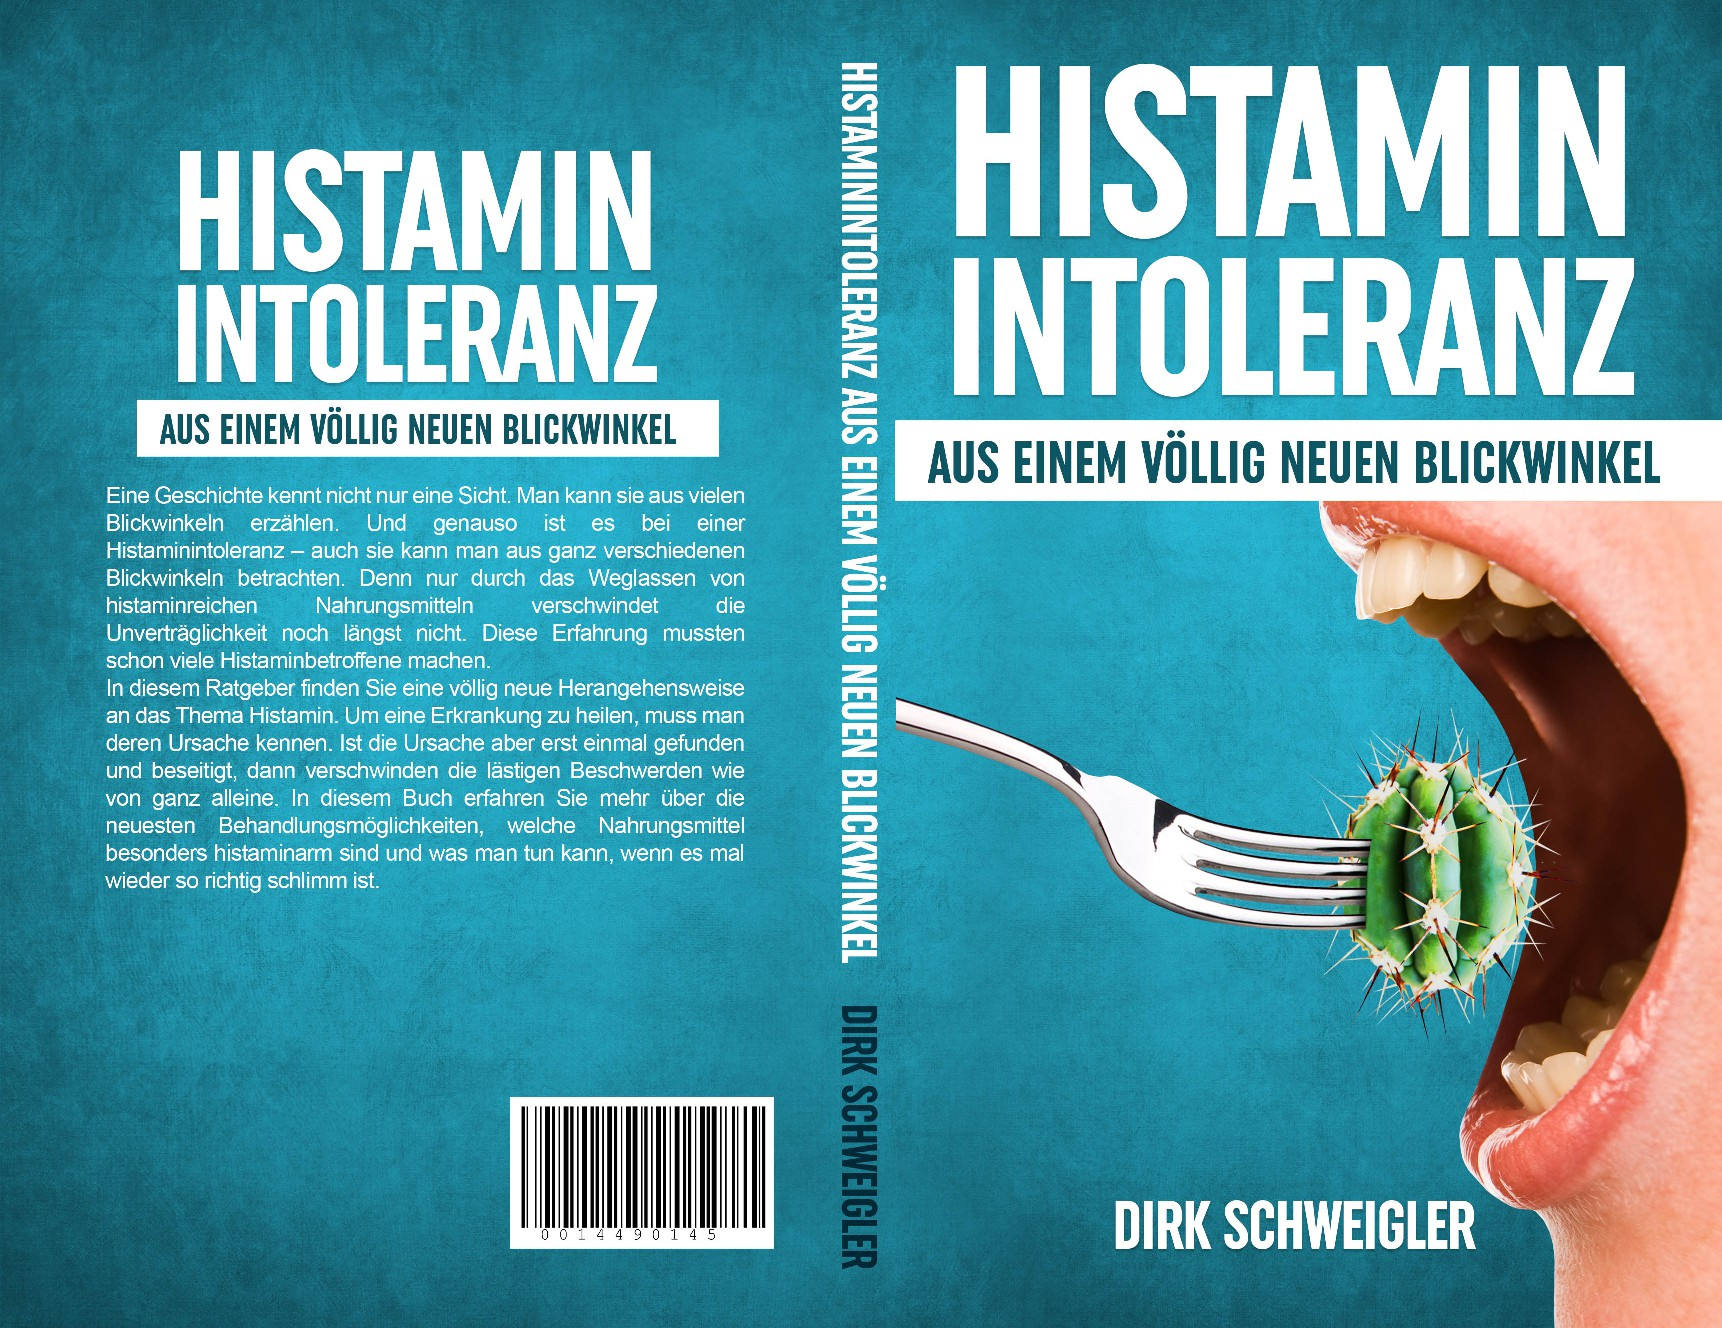 Cover for a book about histamine intolerance (=digestion problems)